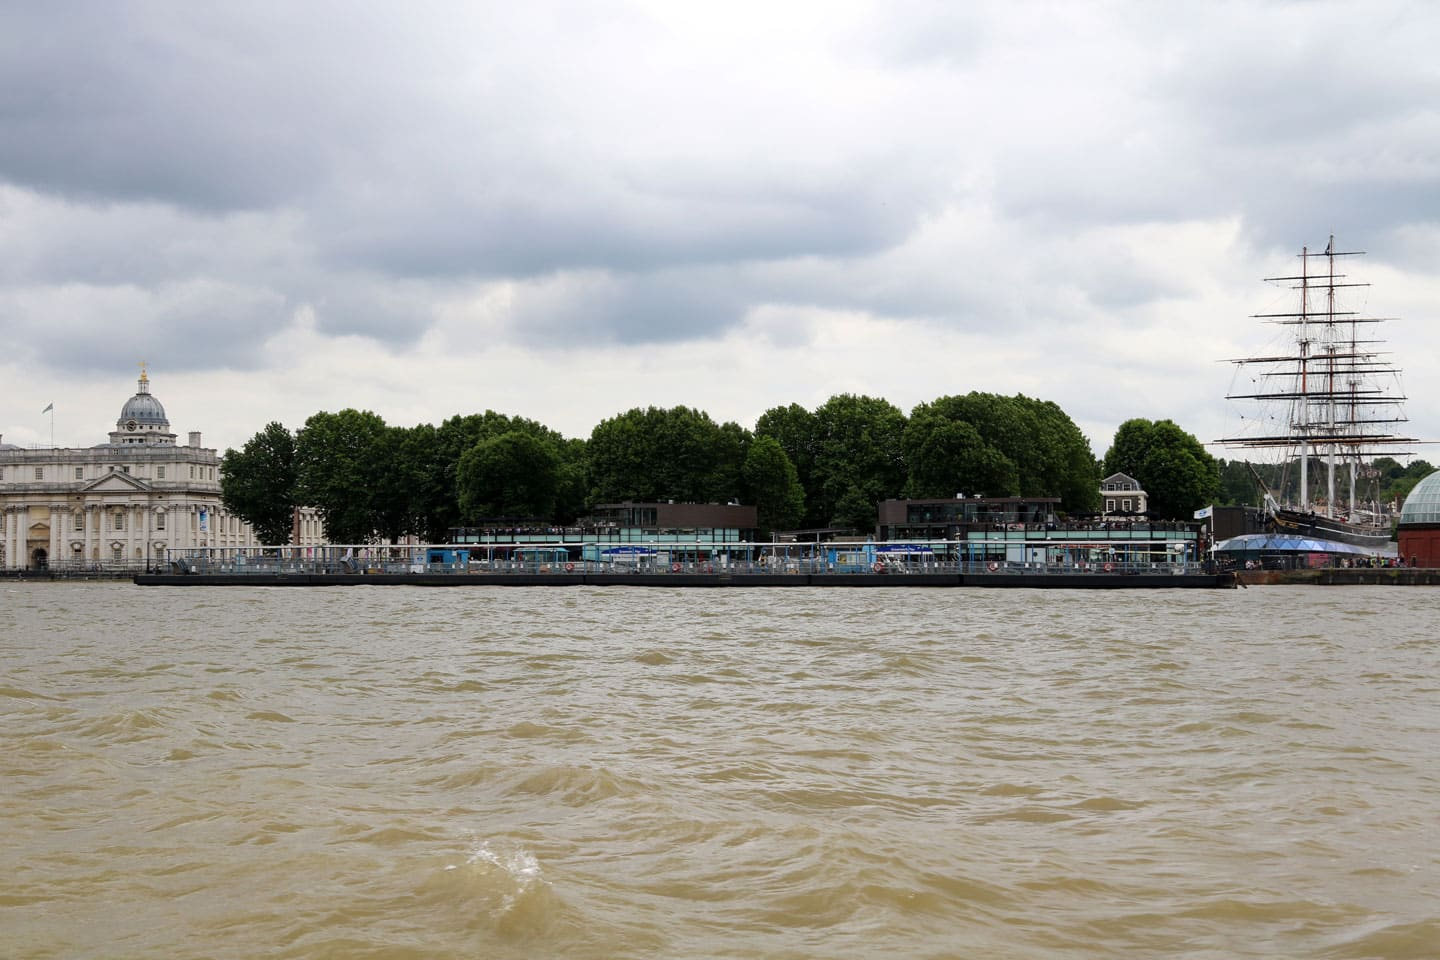 Greenwich Pier (Cutty Sark), Royal Borough of Greenwich | Viscount Cruises